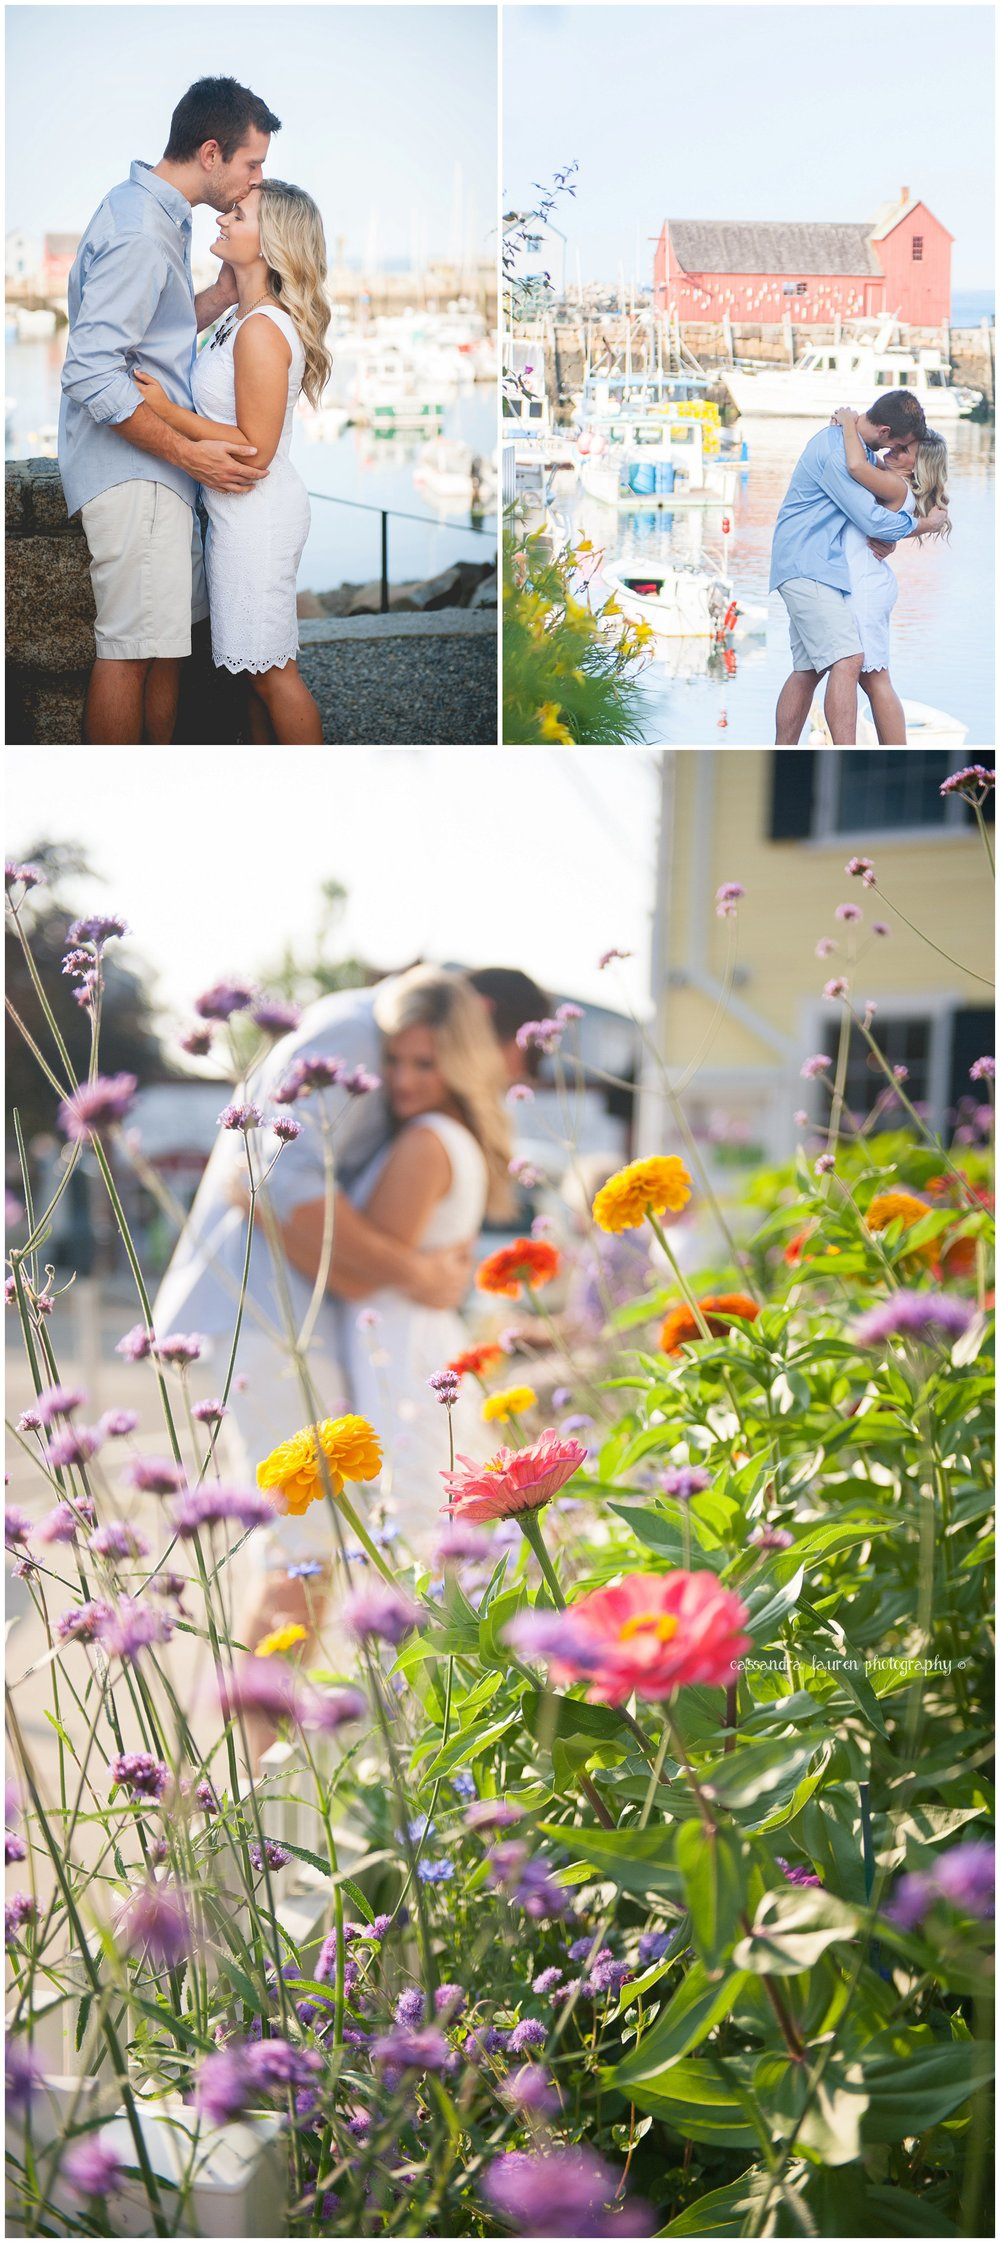 Motif #1 Rockport MA summer engagement session photographer